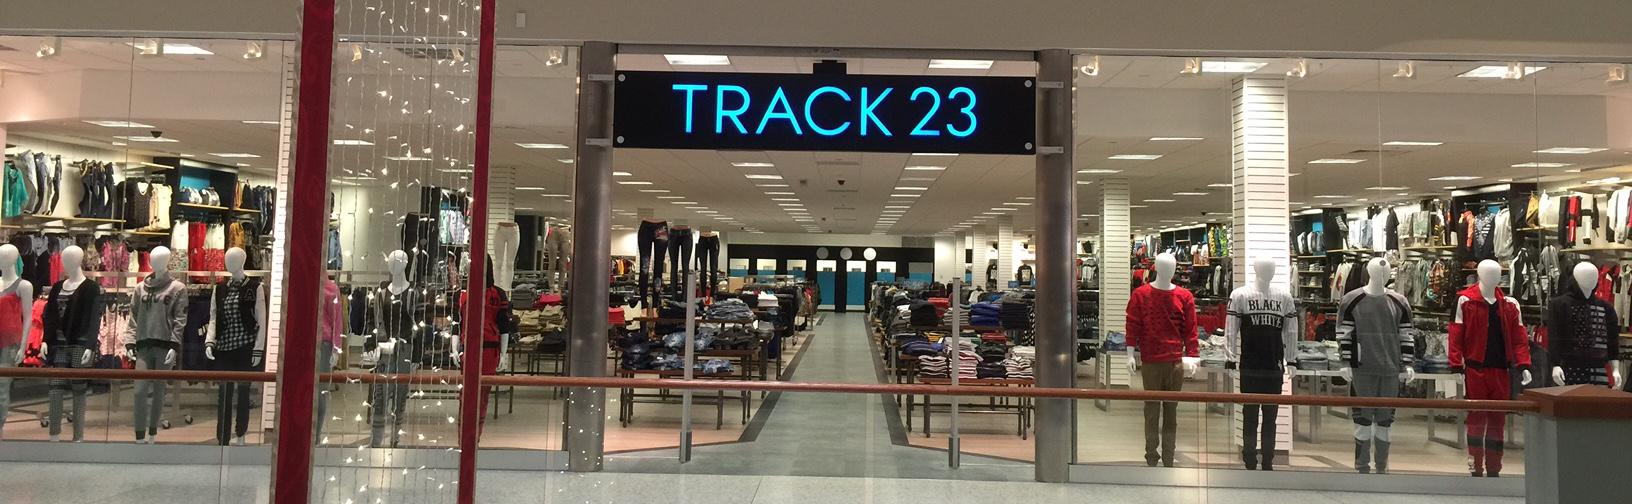 Indoor Channel Letters Track 23